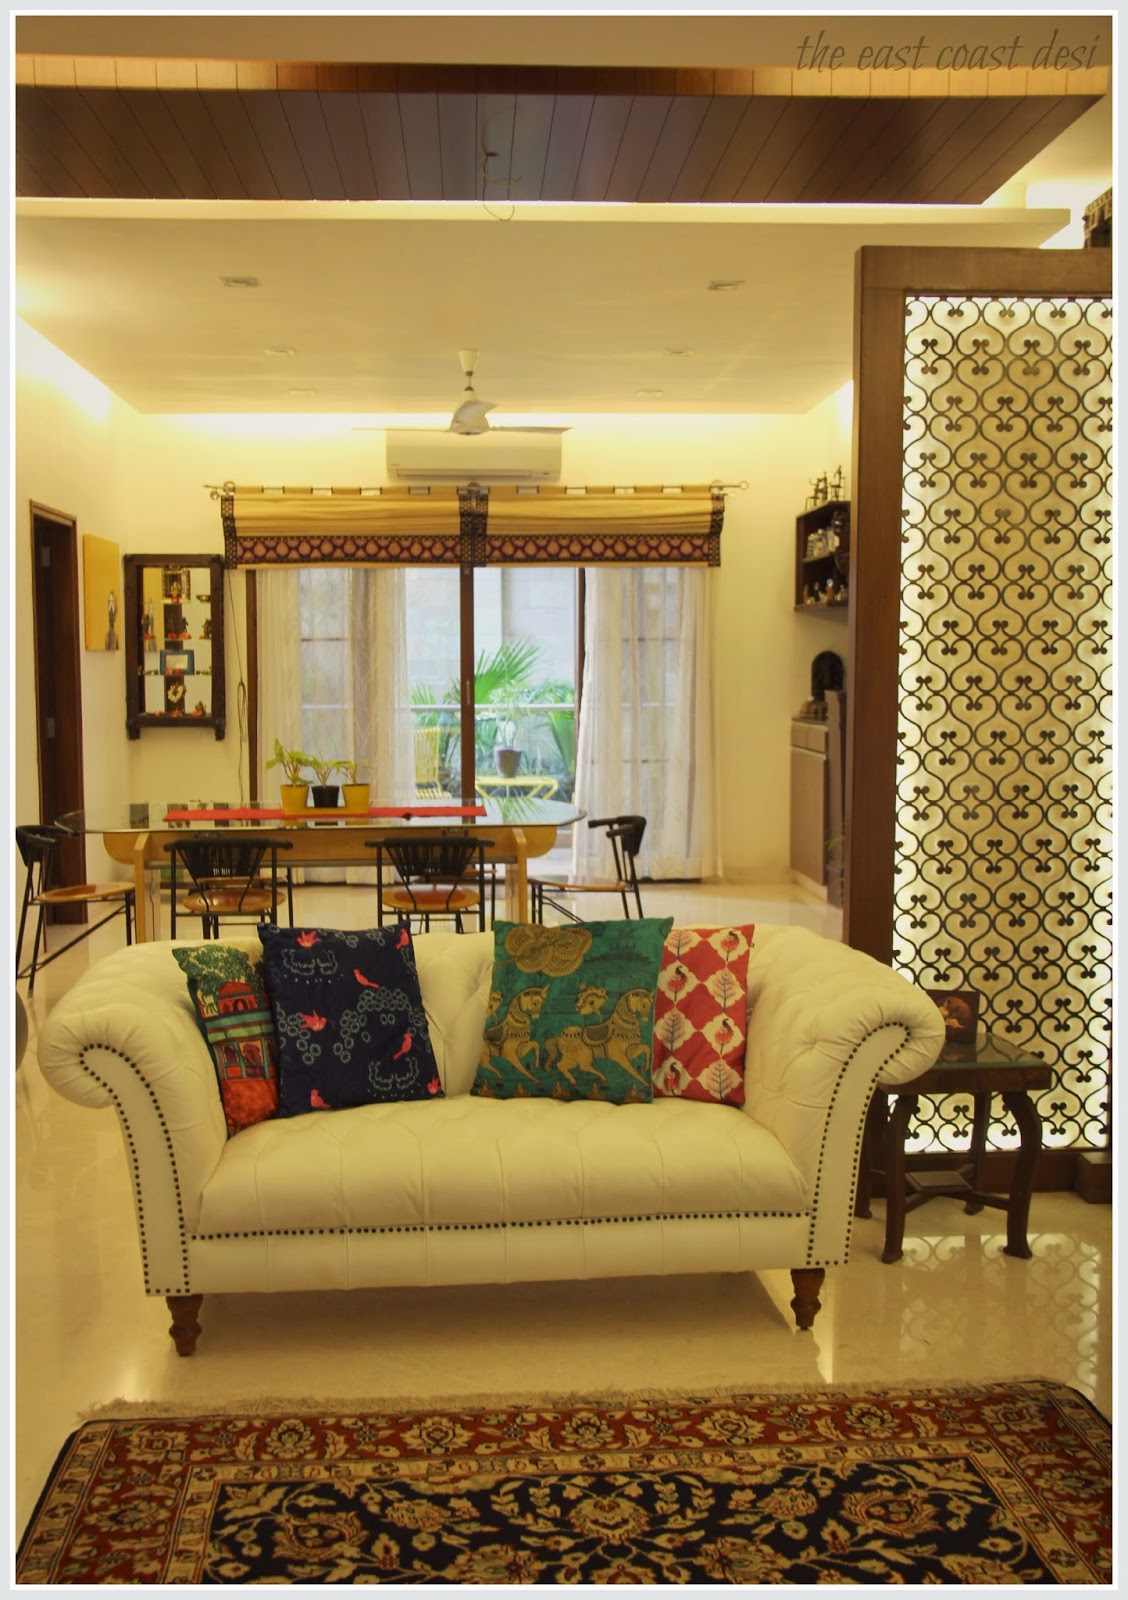 The east coast desi masterful mixing home tour for Ethnic home designs